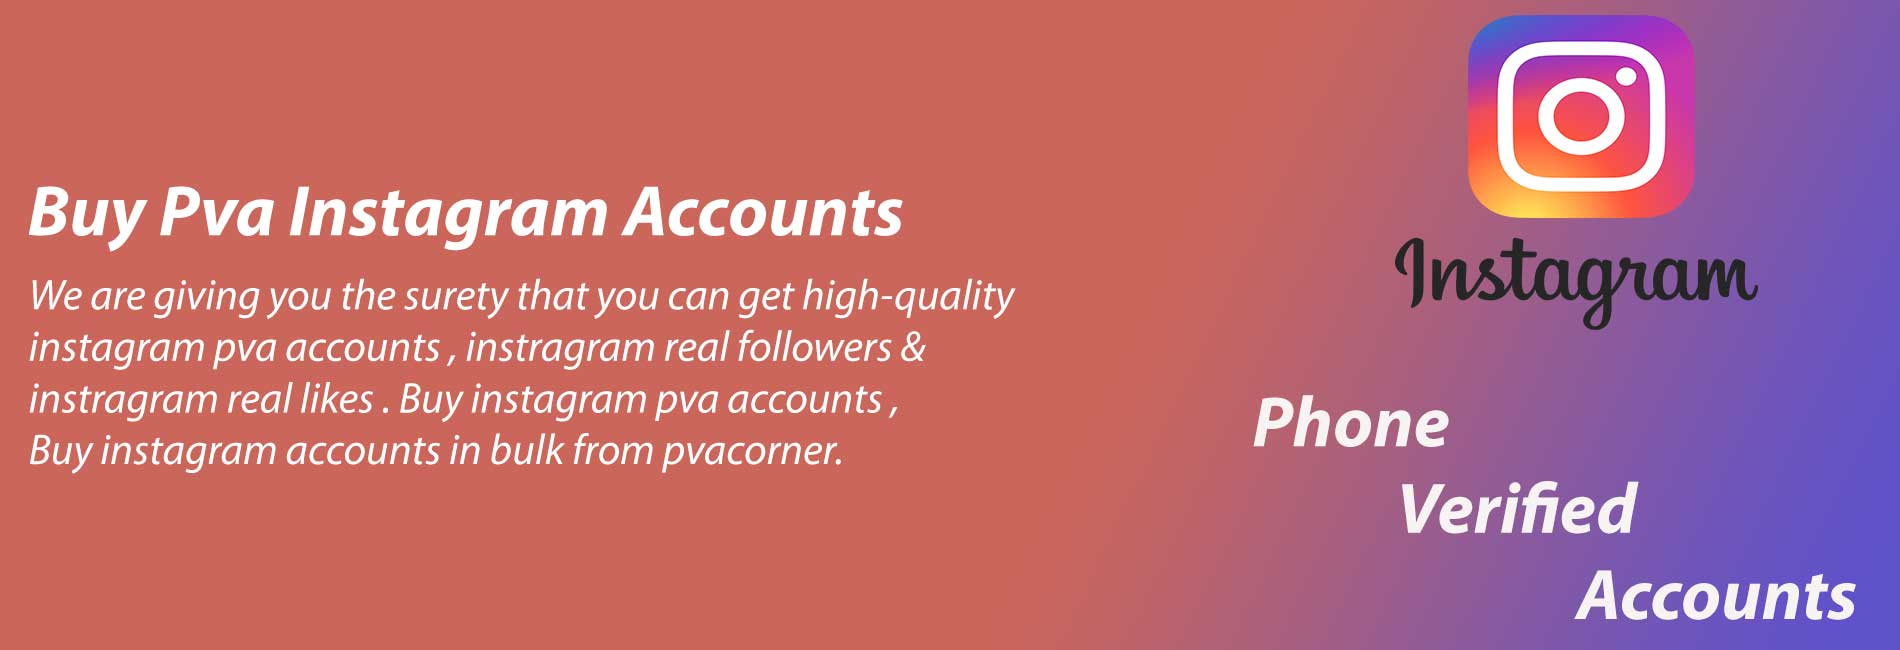 Buy pva instagram accounts